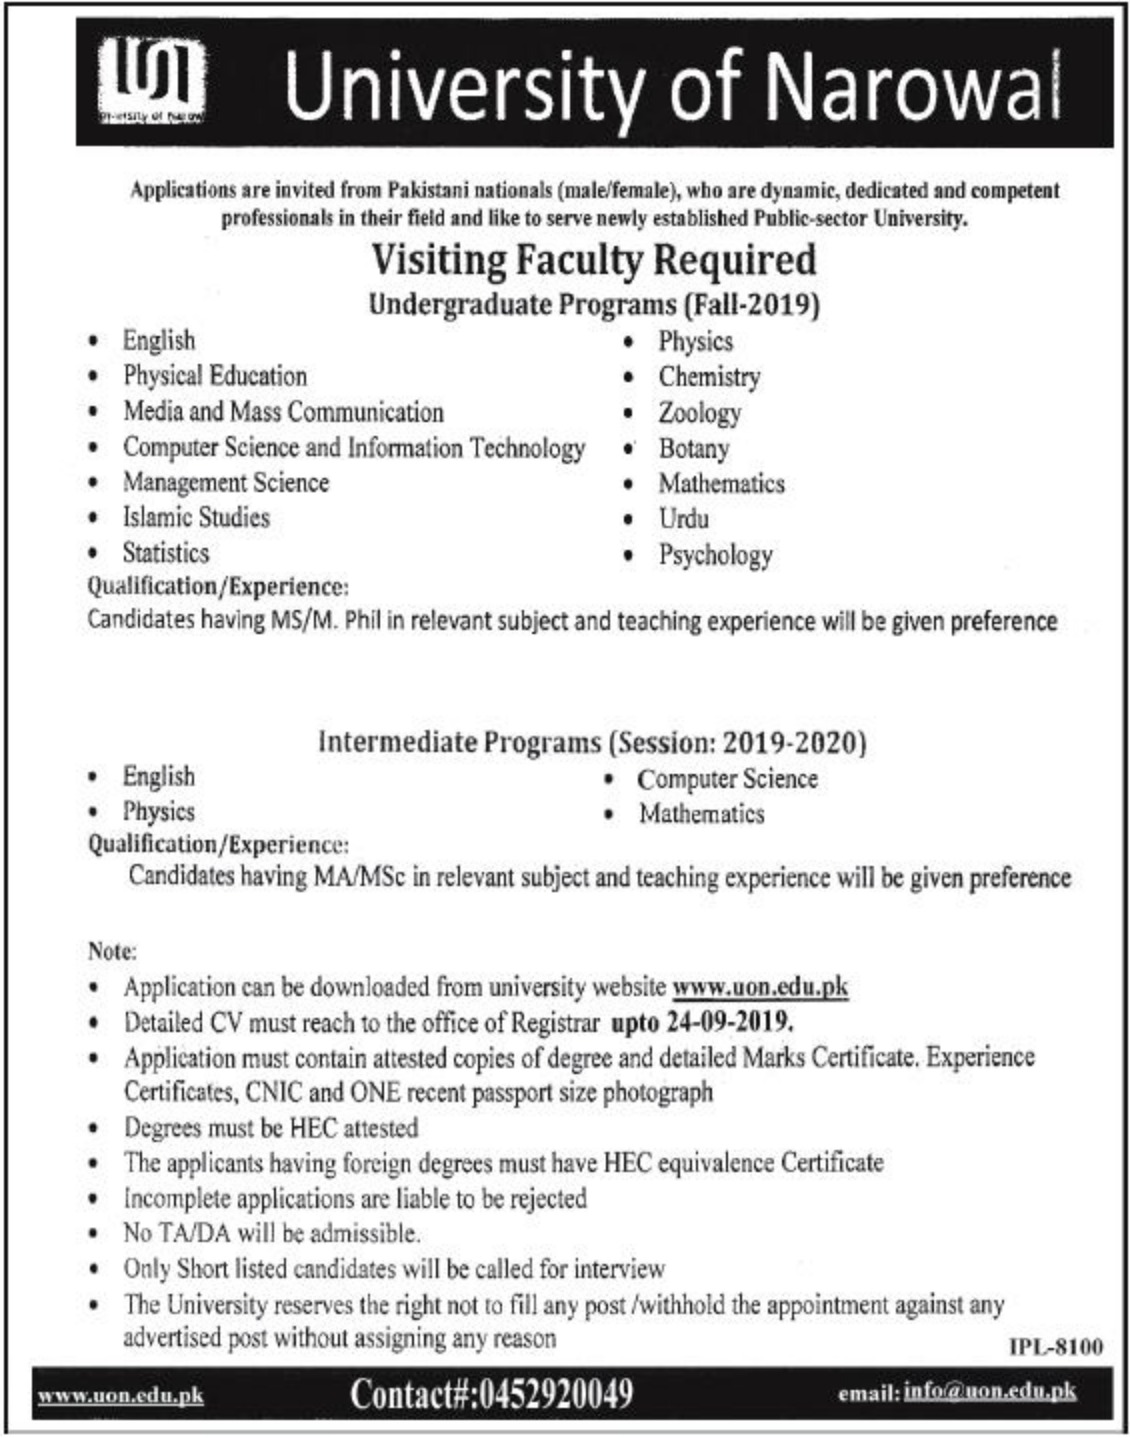 University of Narowal Jobs 2019 Visiting Faculty Application Form